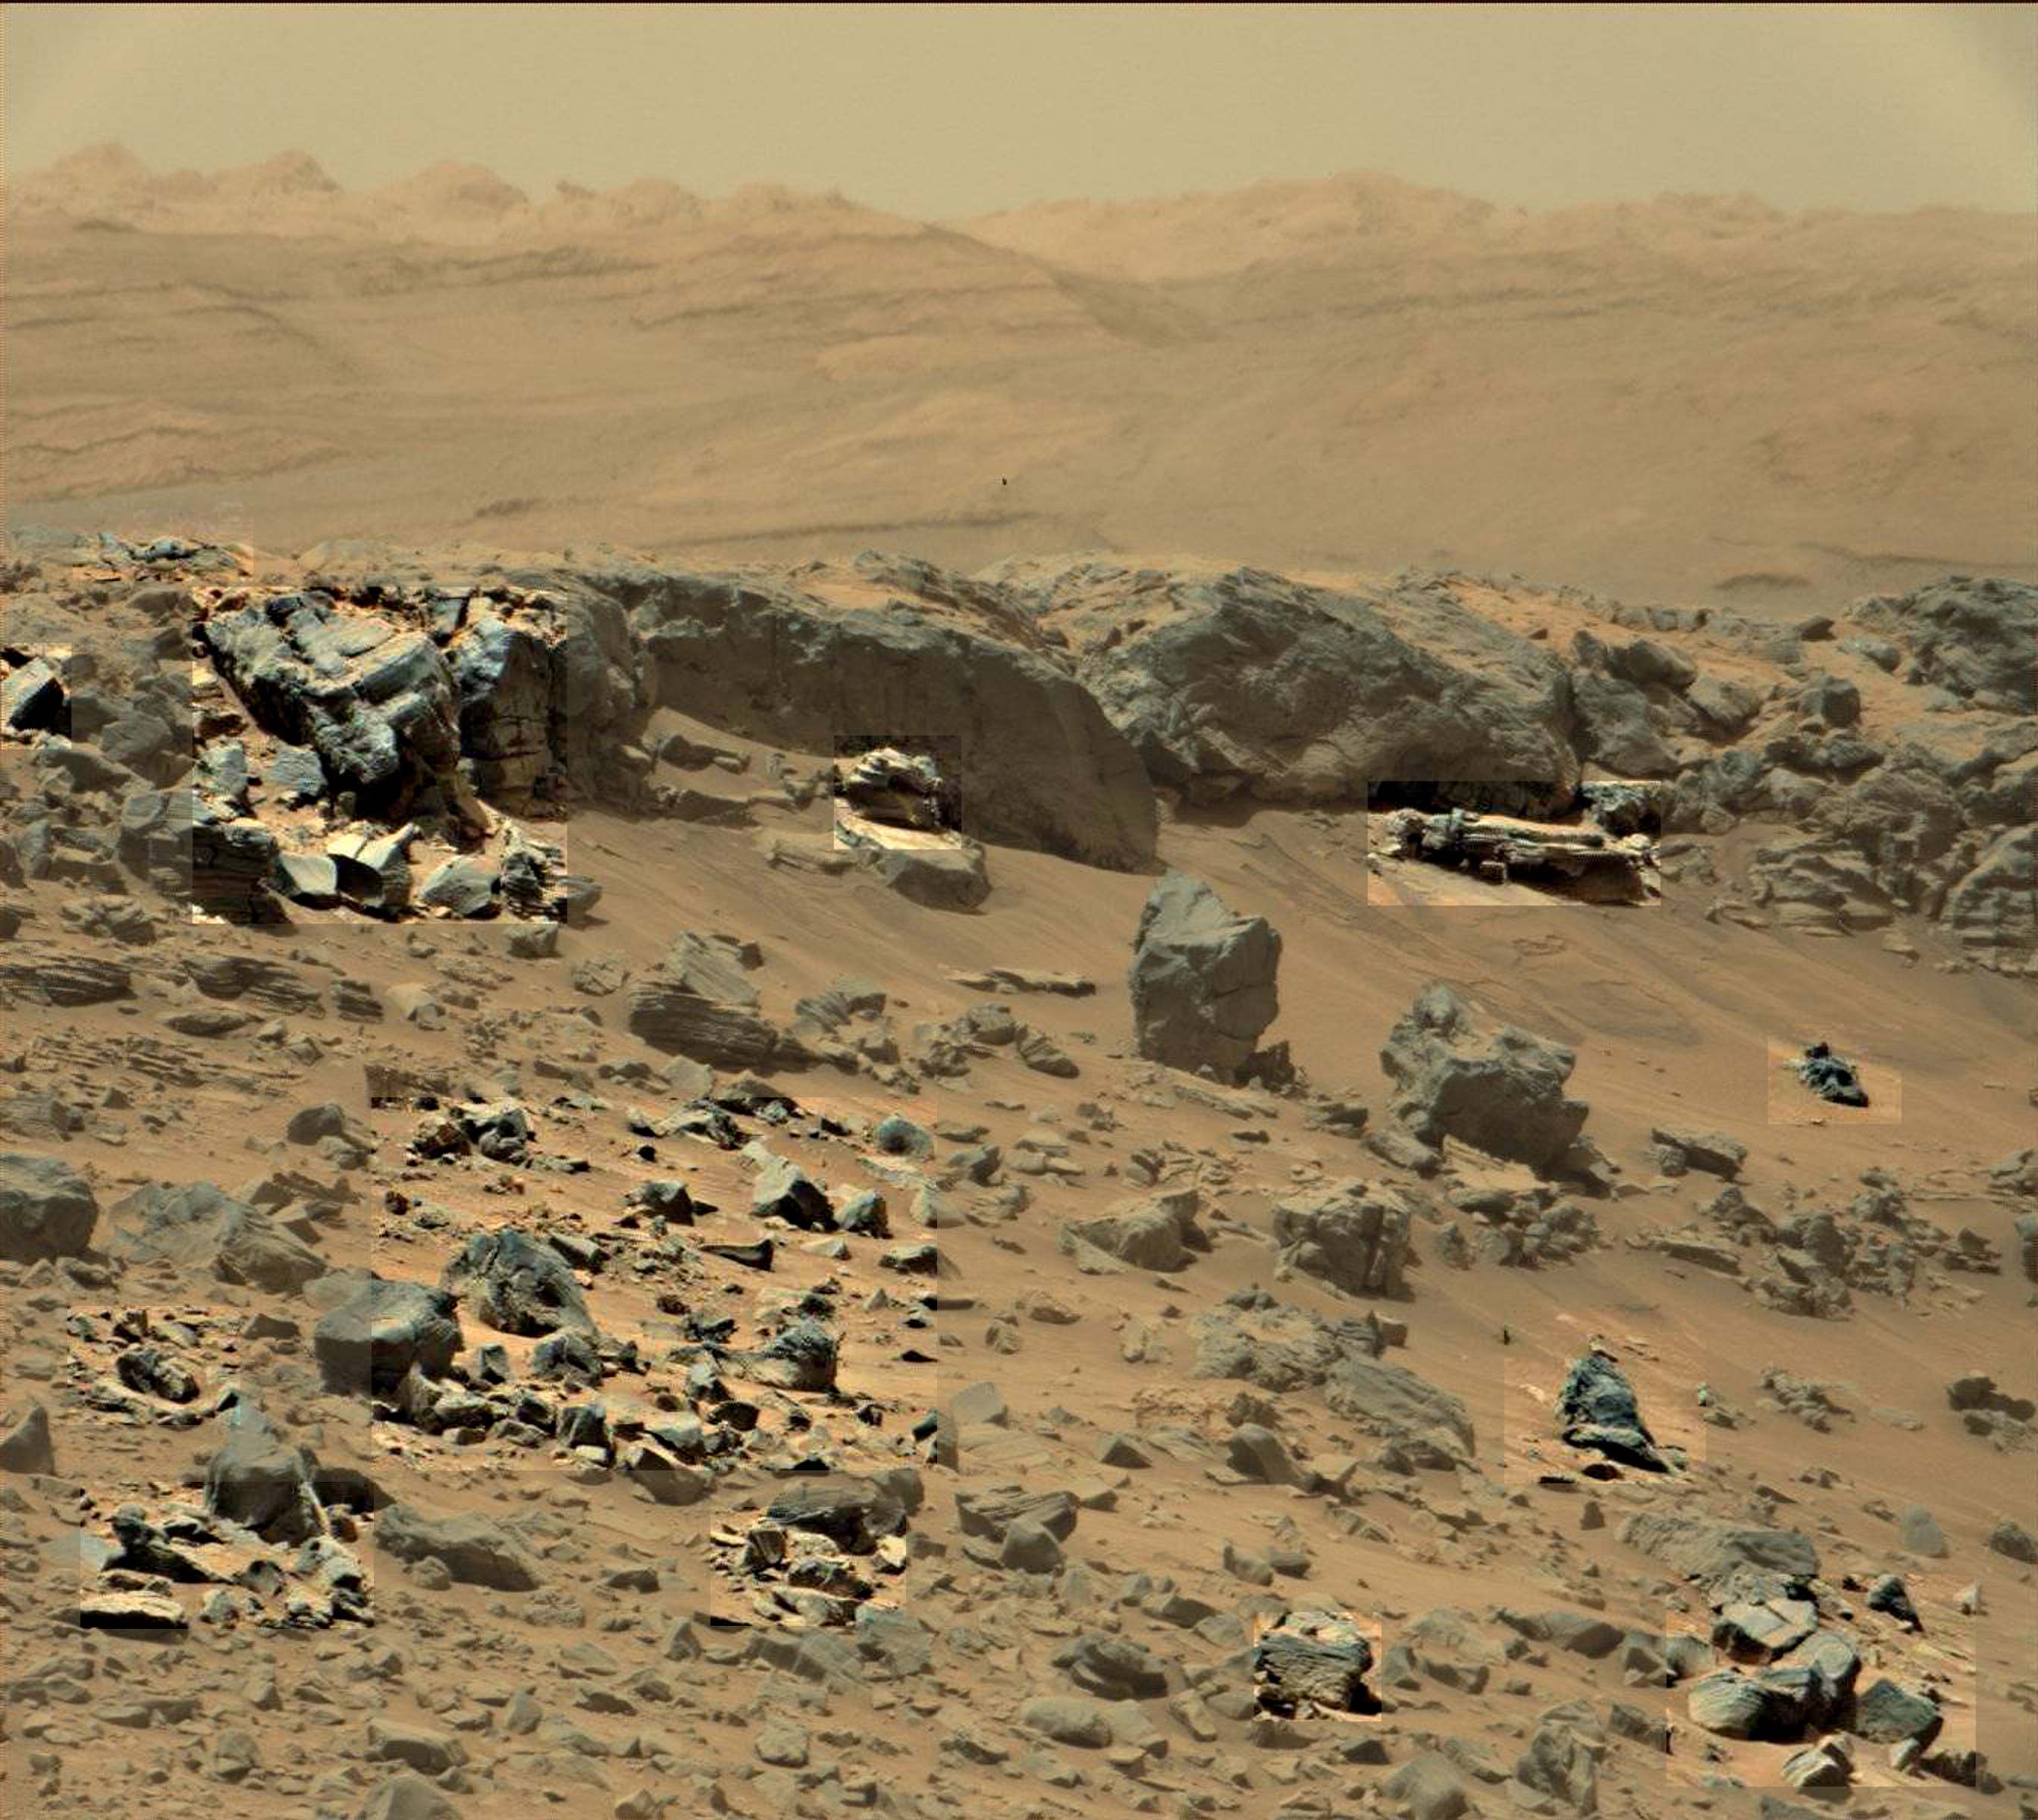 Sol 710 Mars Curiosity Rover tomb with artifacts - harry